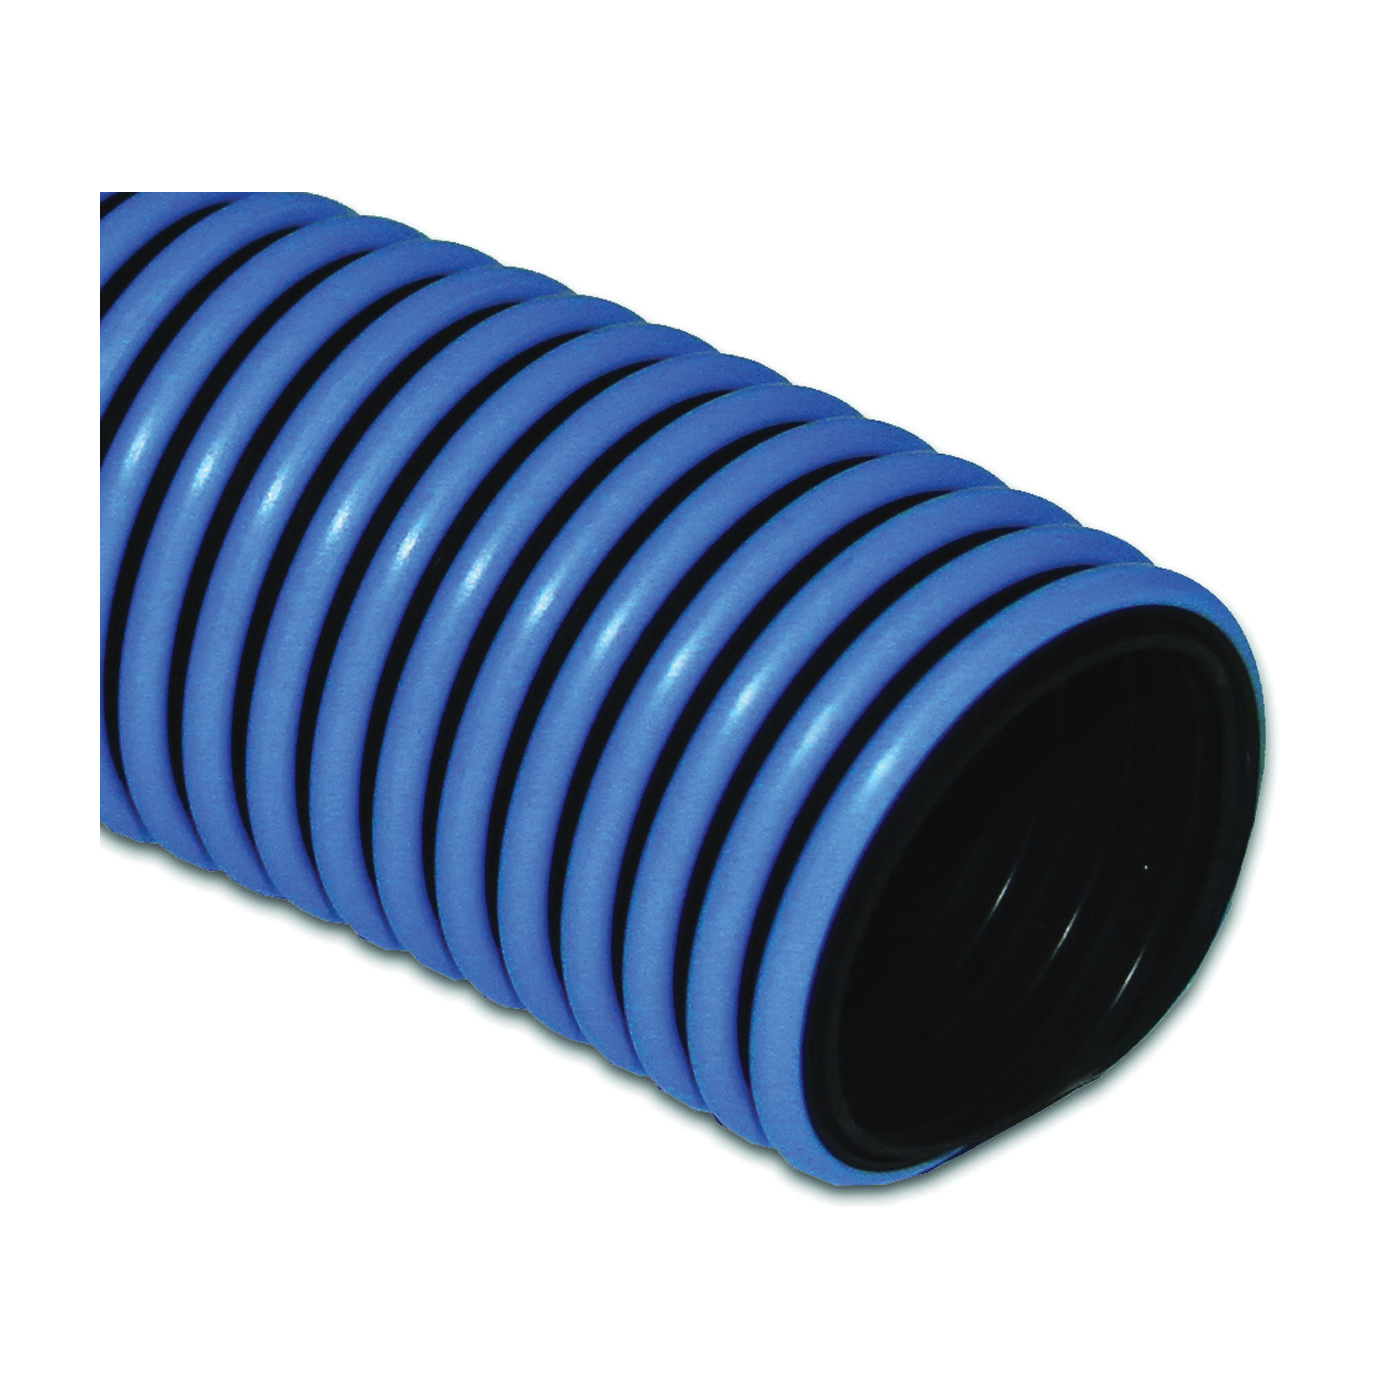 Picture of UDP T32005001/RPSP Pool Vacuum Hose, 1-1/4 in ID, 50 ft L, Polyethylene, Black/Blue